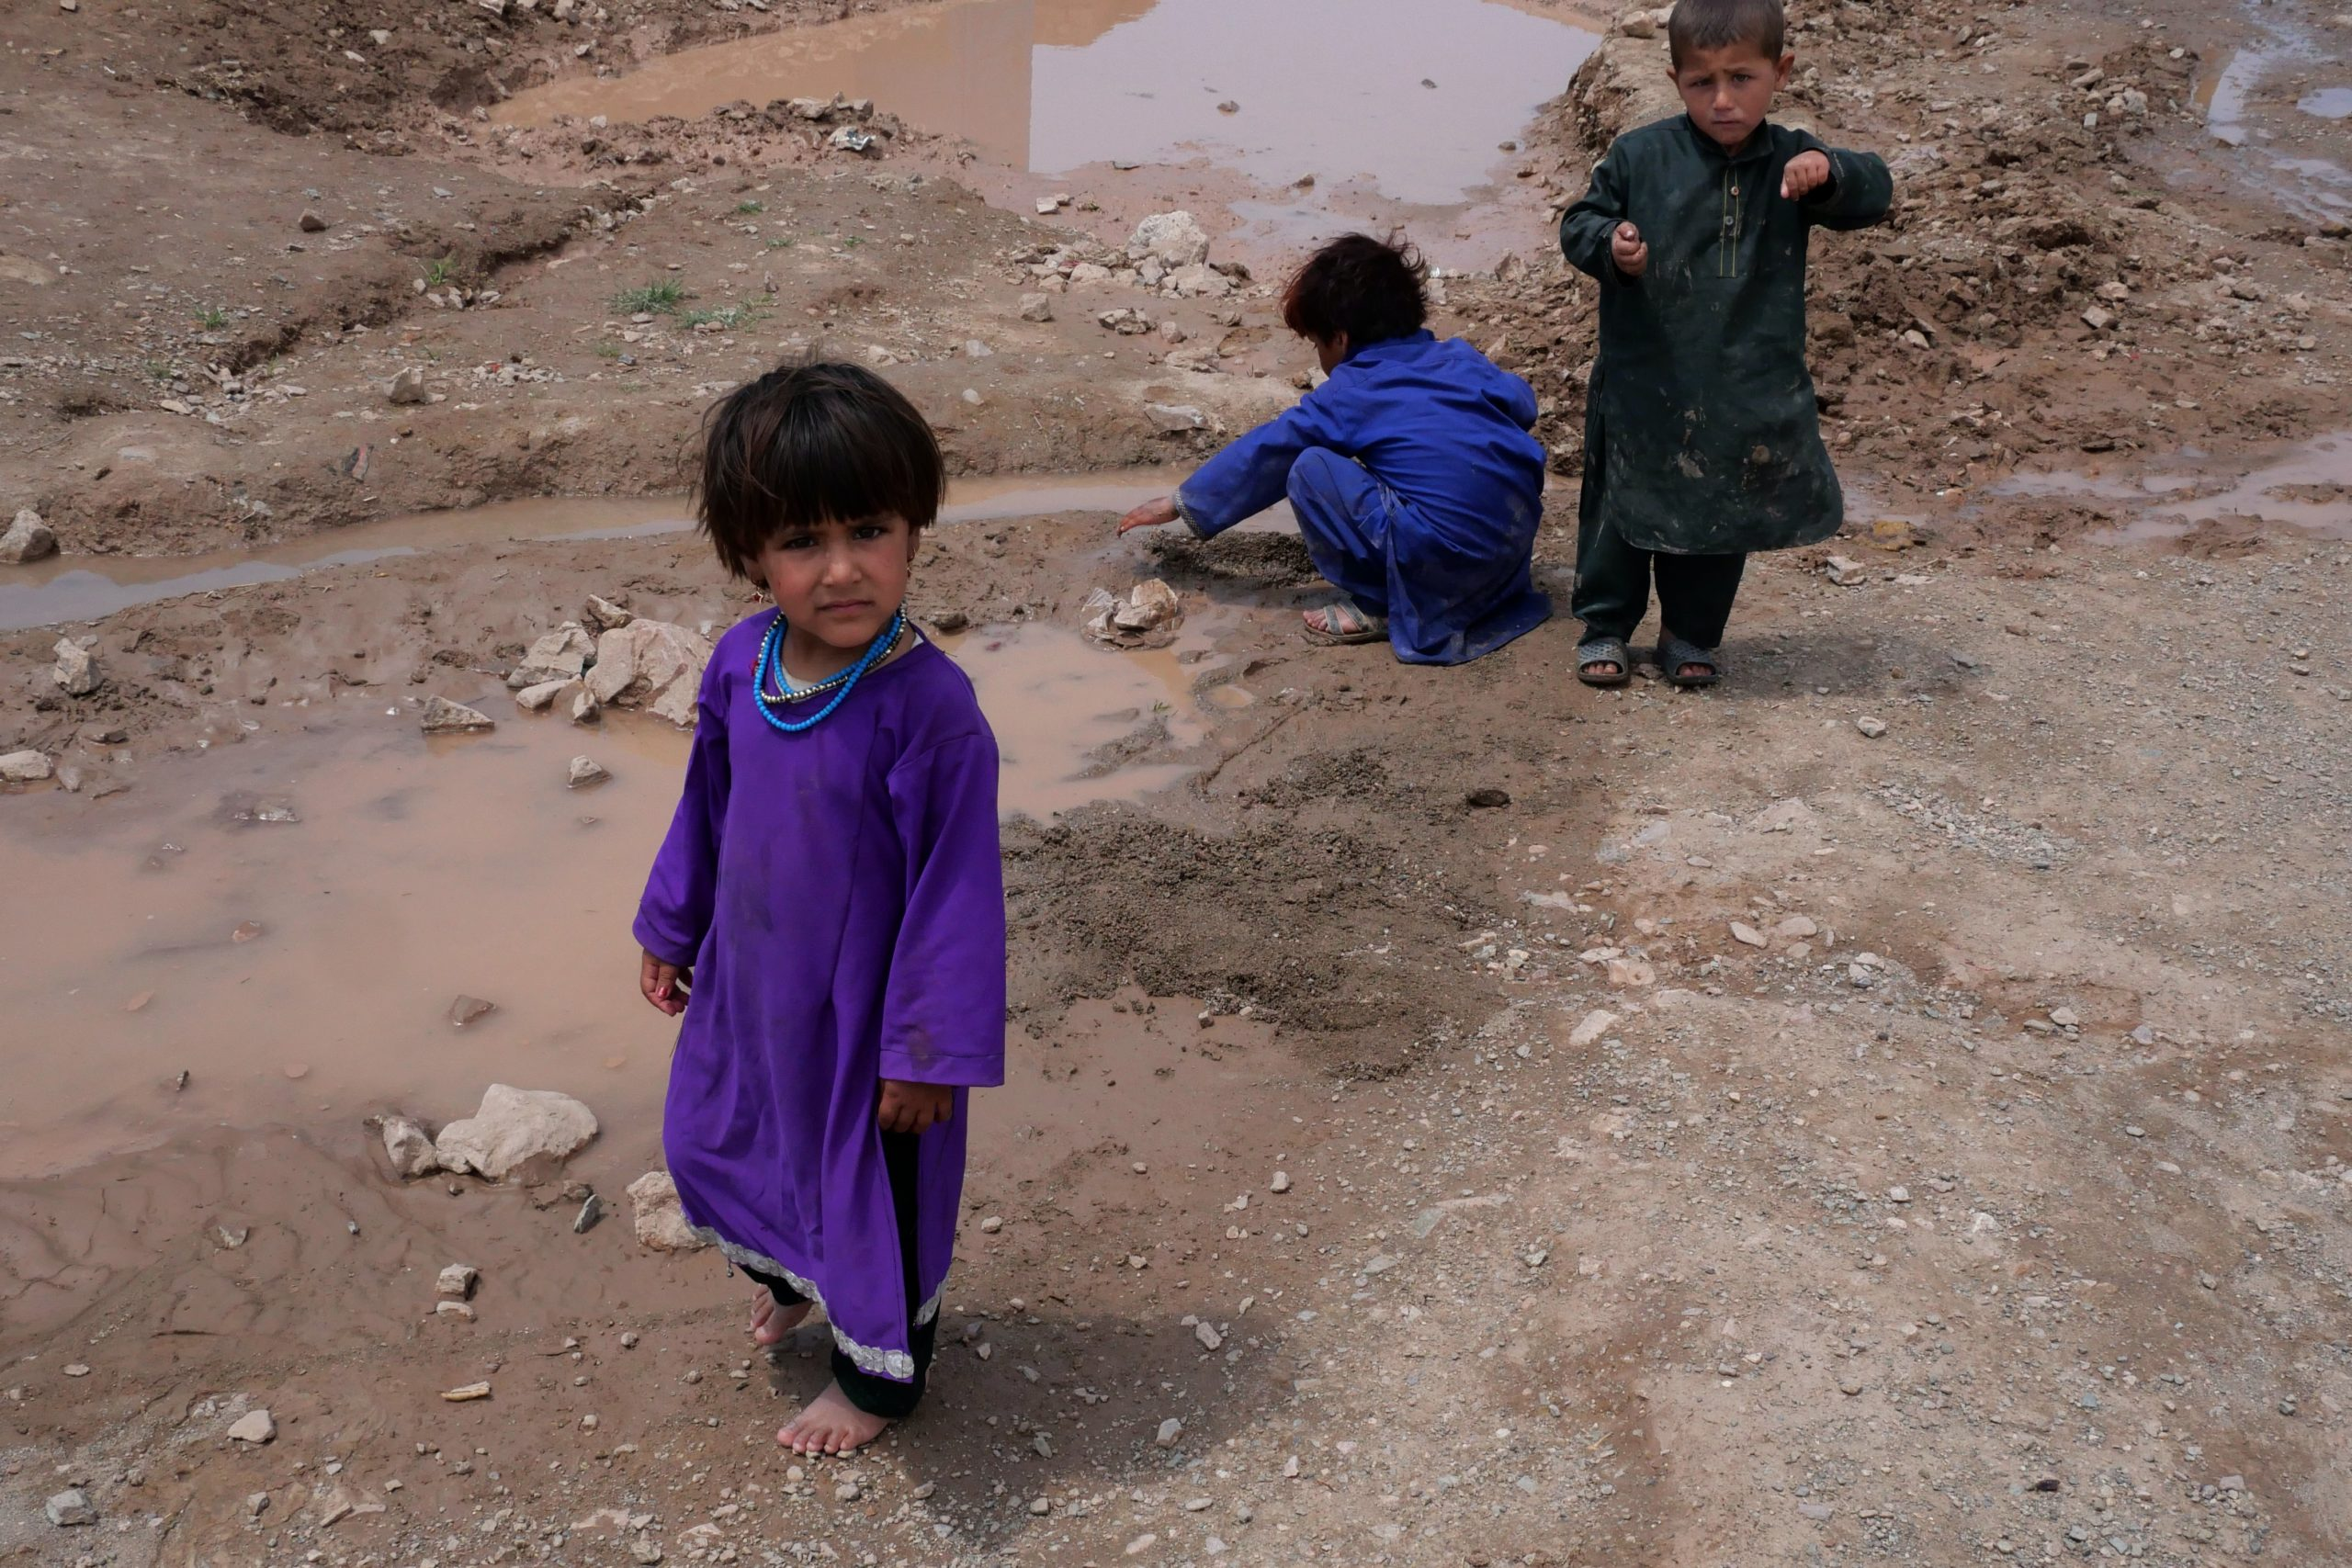 Afghan children play in the mud in an unofficial camp for internally displaced people in Herat, Afghanistan (Image: Charlie Faulkner)